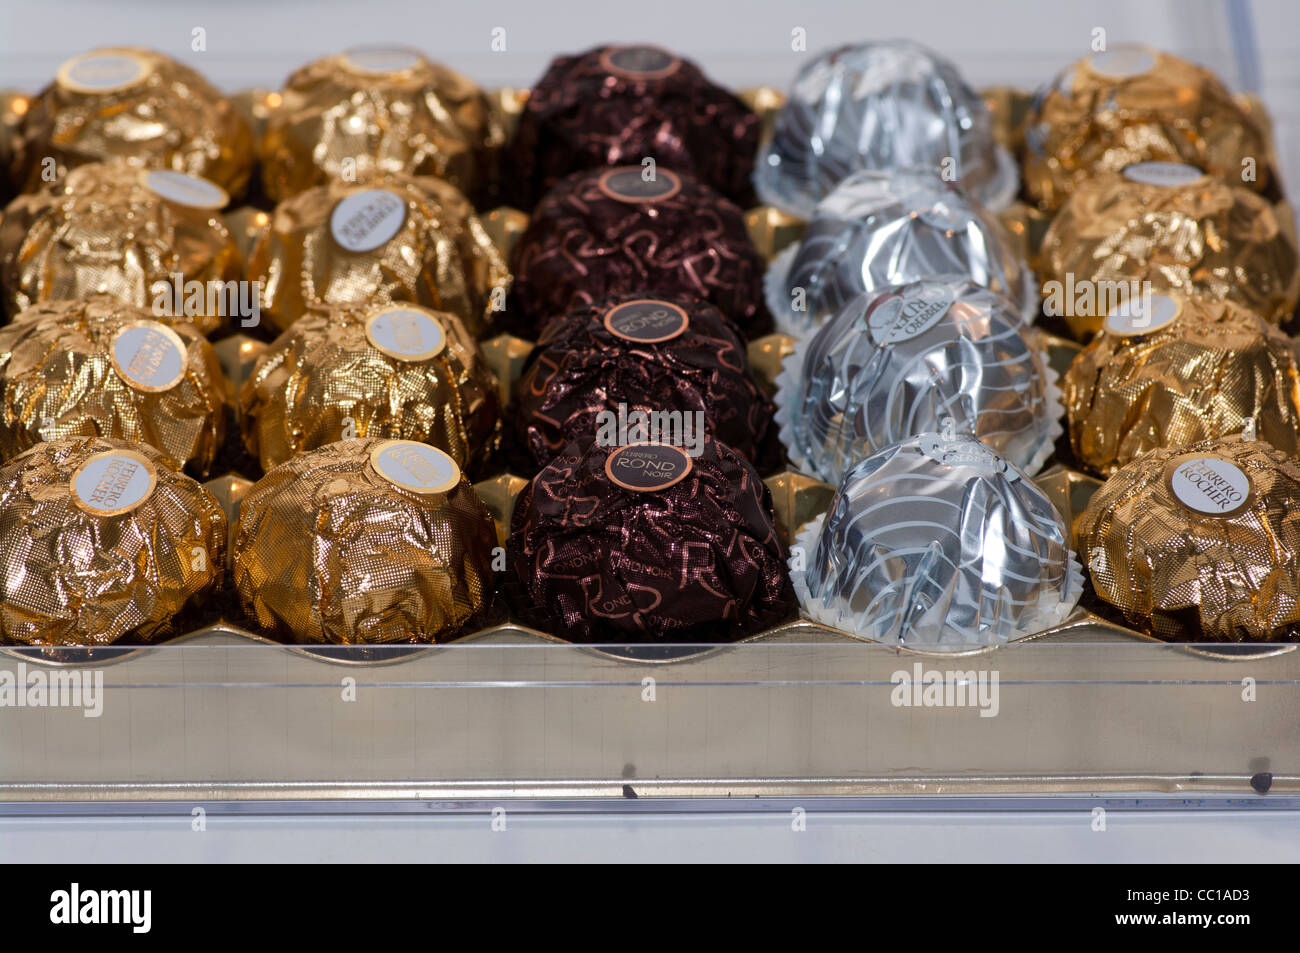 Ferrero Rocher Chocolate Stock Photos & Ferrero Rocher Chocolate ...